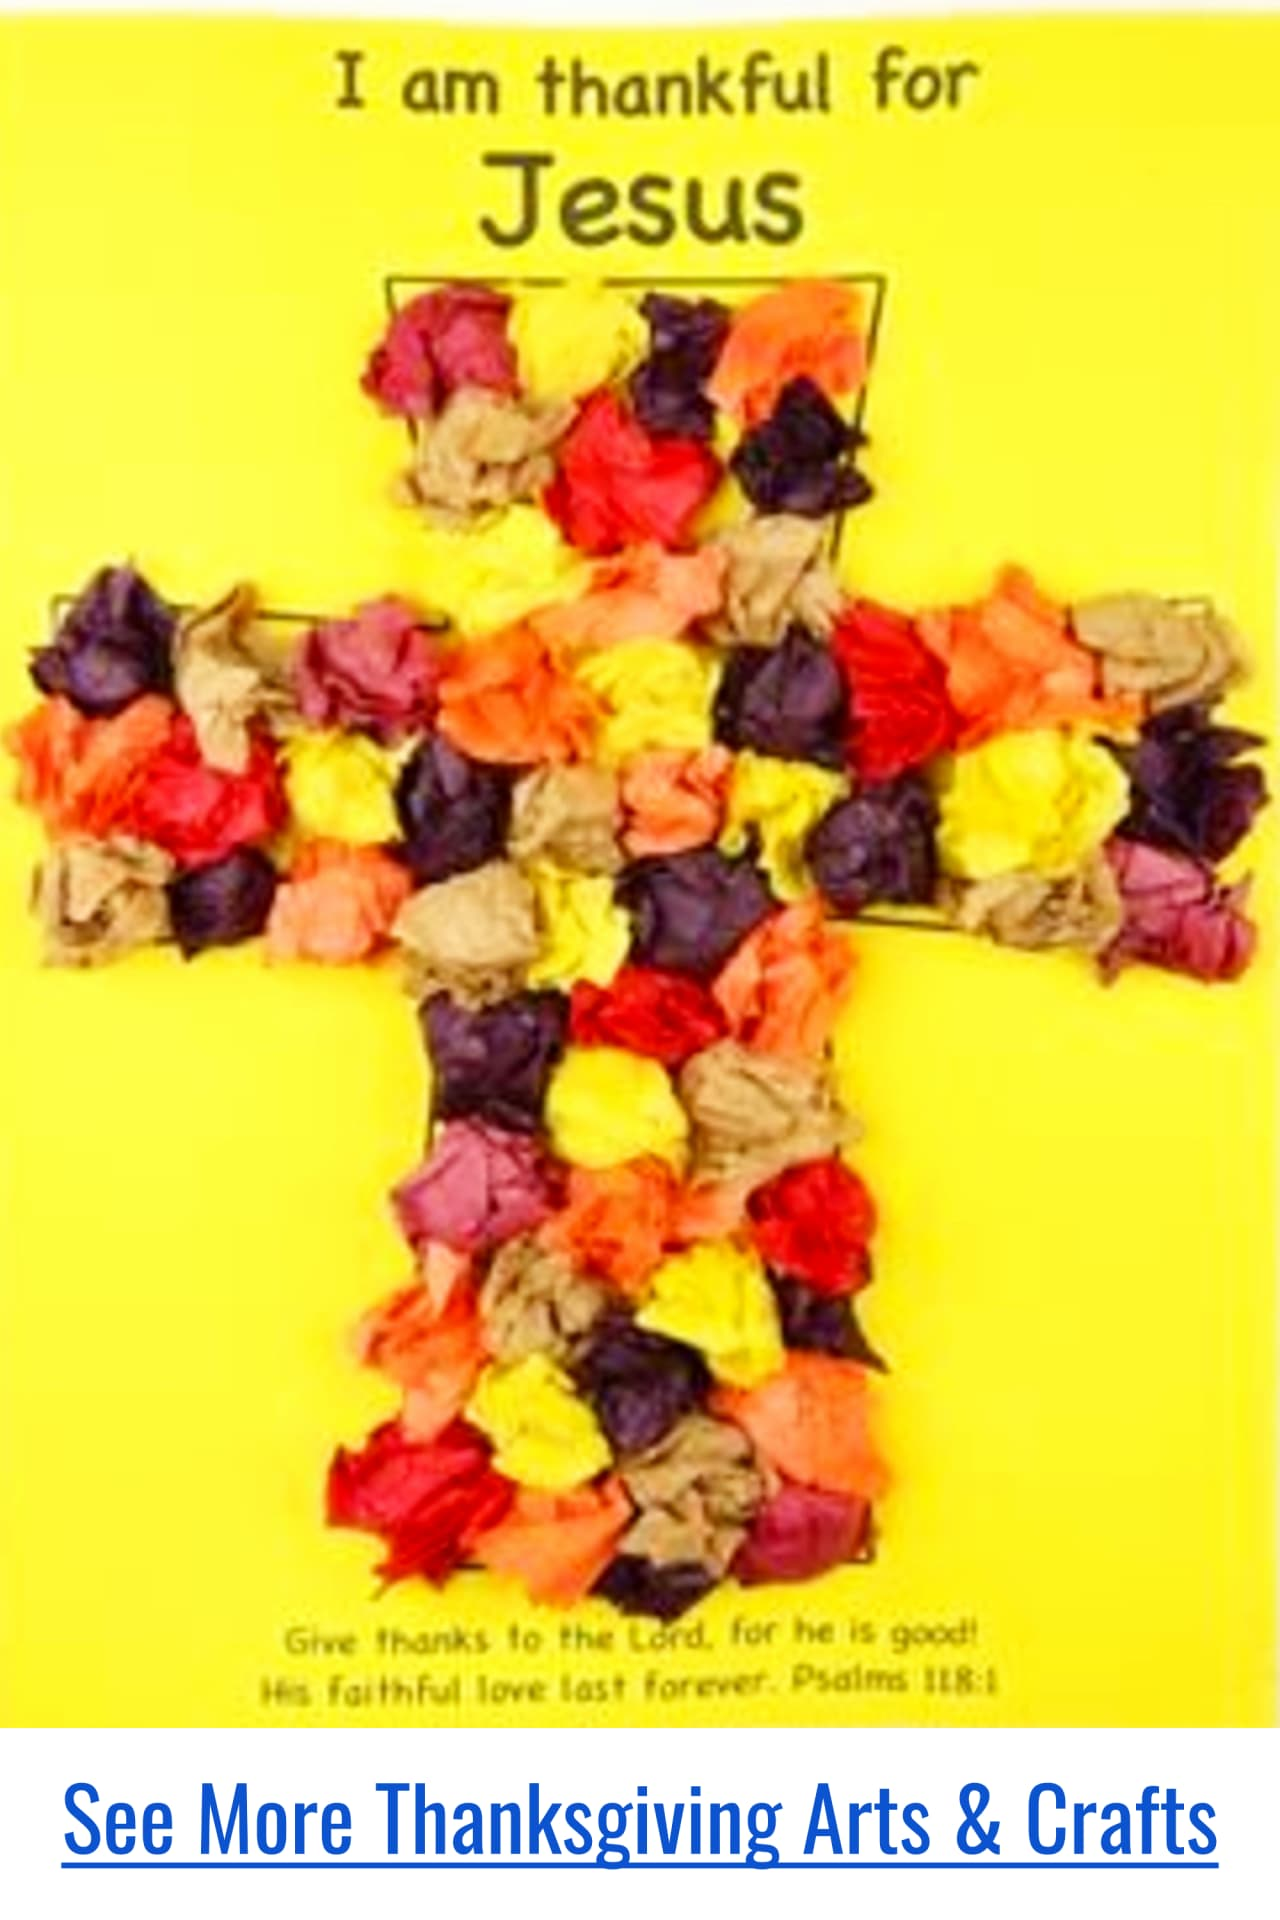 Thanksgiving Sucnday School crafts and art projects for toddlers and preschoolers to make at church, school, or home